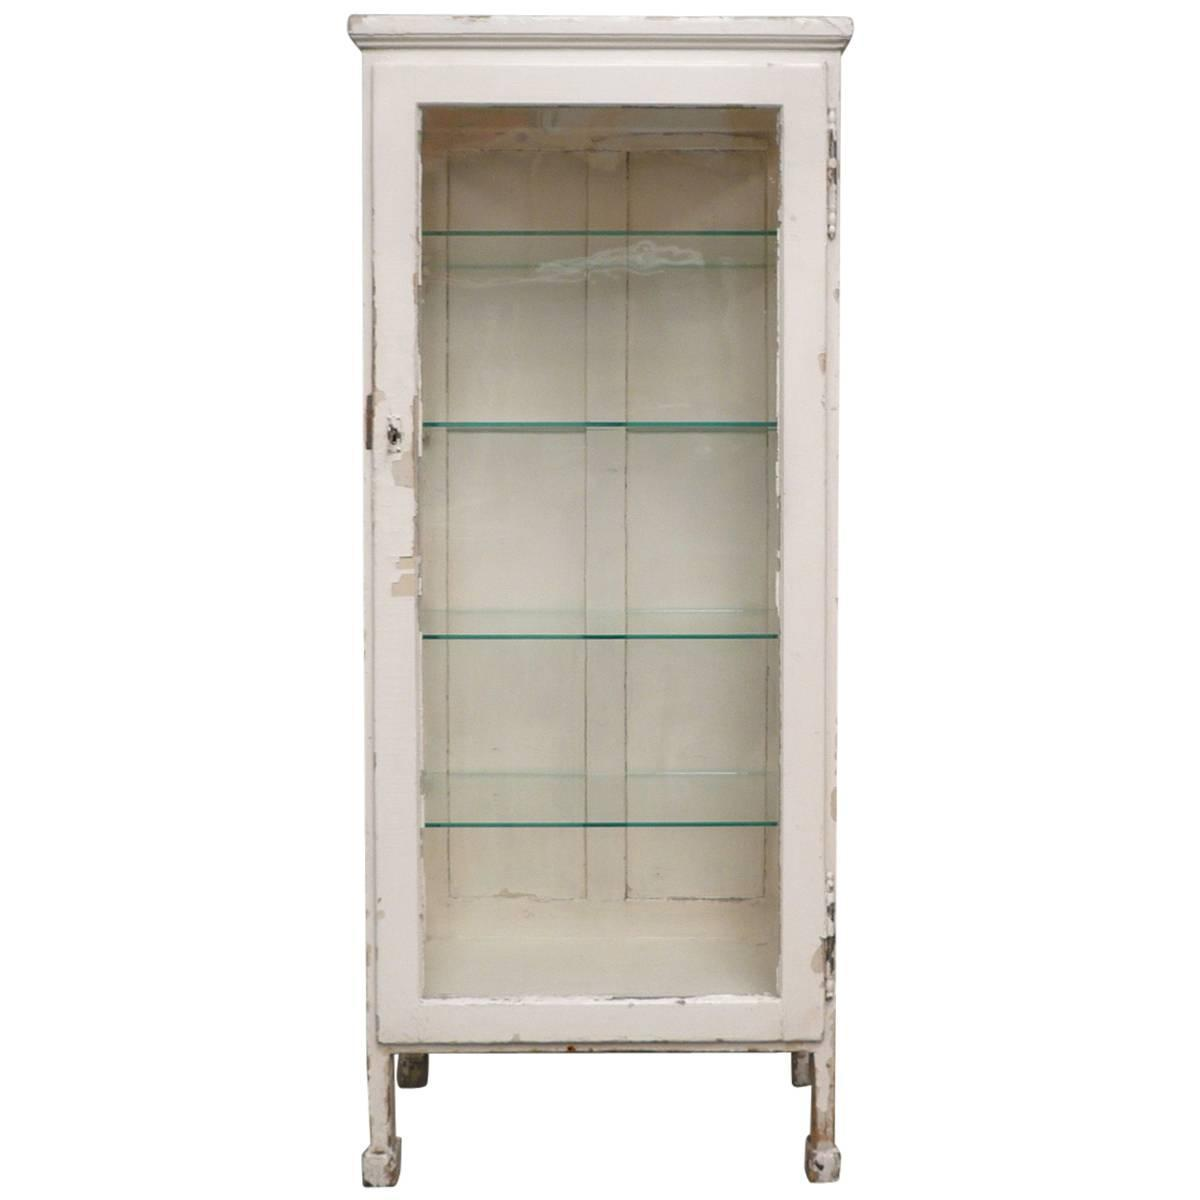 Antique Medicine Cabinet Wood vintage hungarian wood and glass medicine cabinet, 1930s at 1stdibs